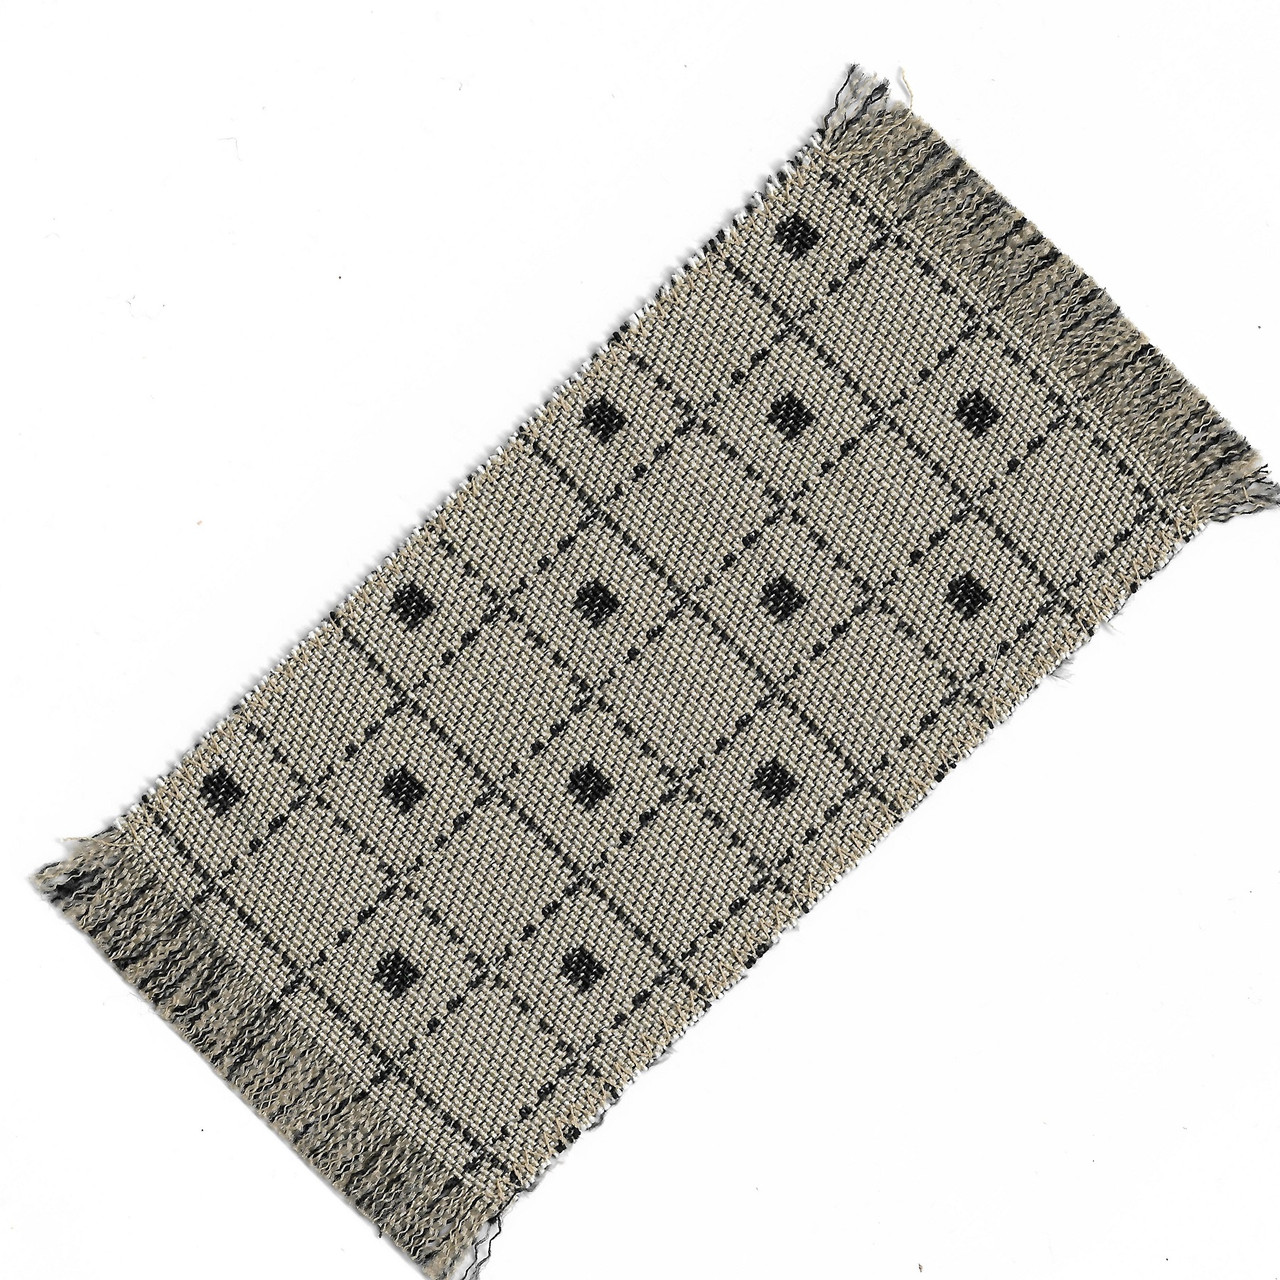 Small Neutral Woven Area Rug (SMSHWRS416M)